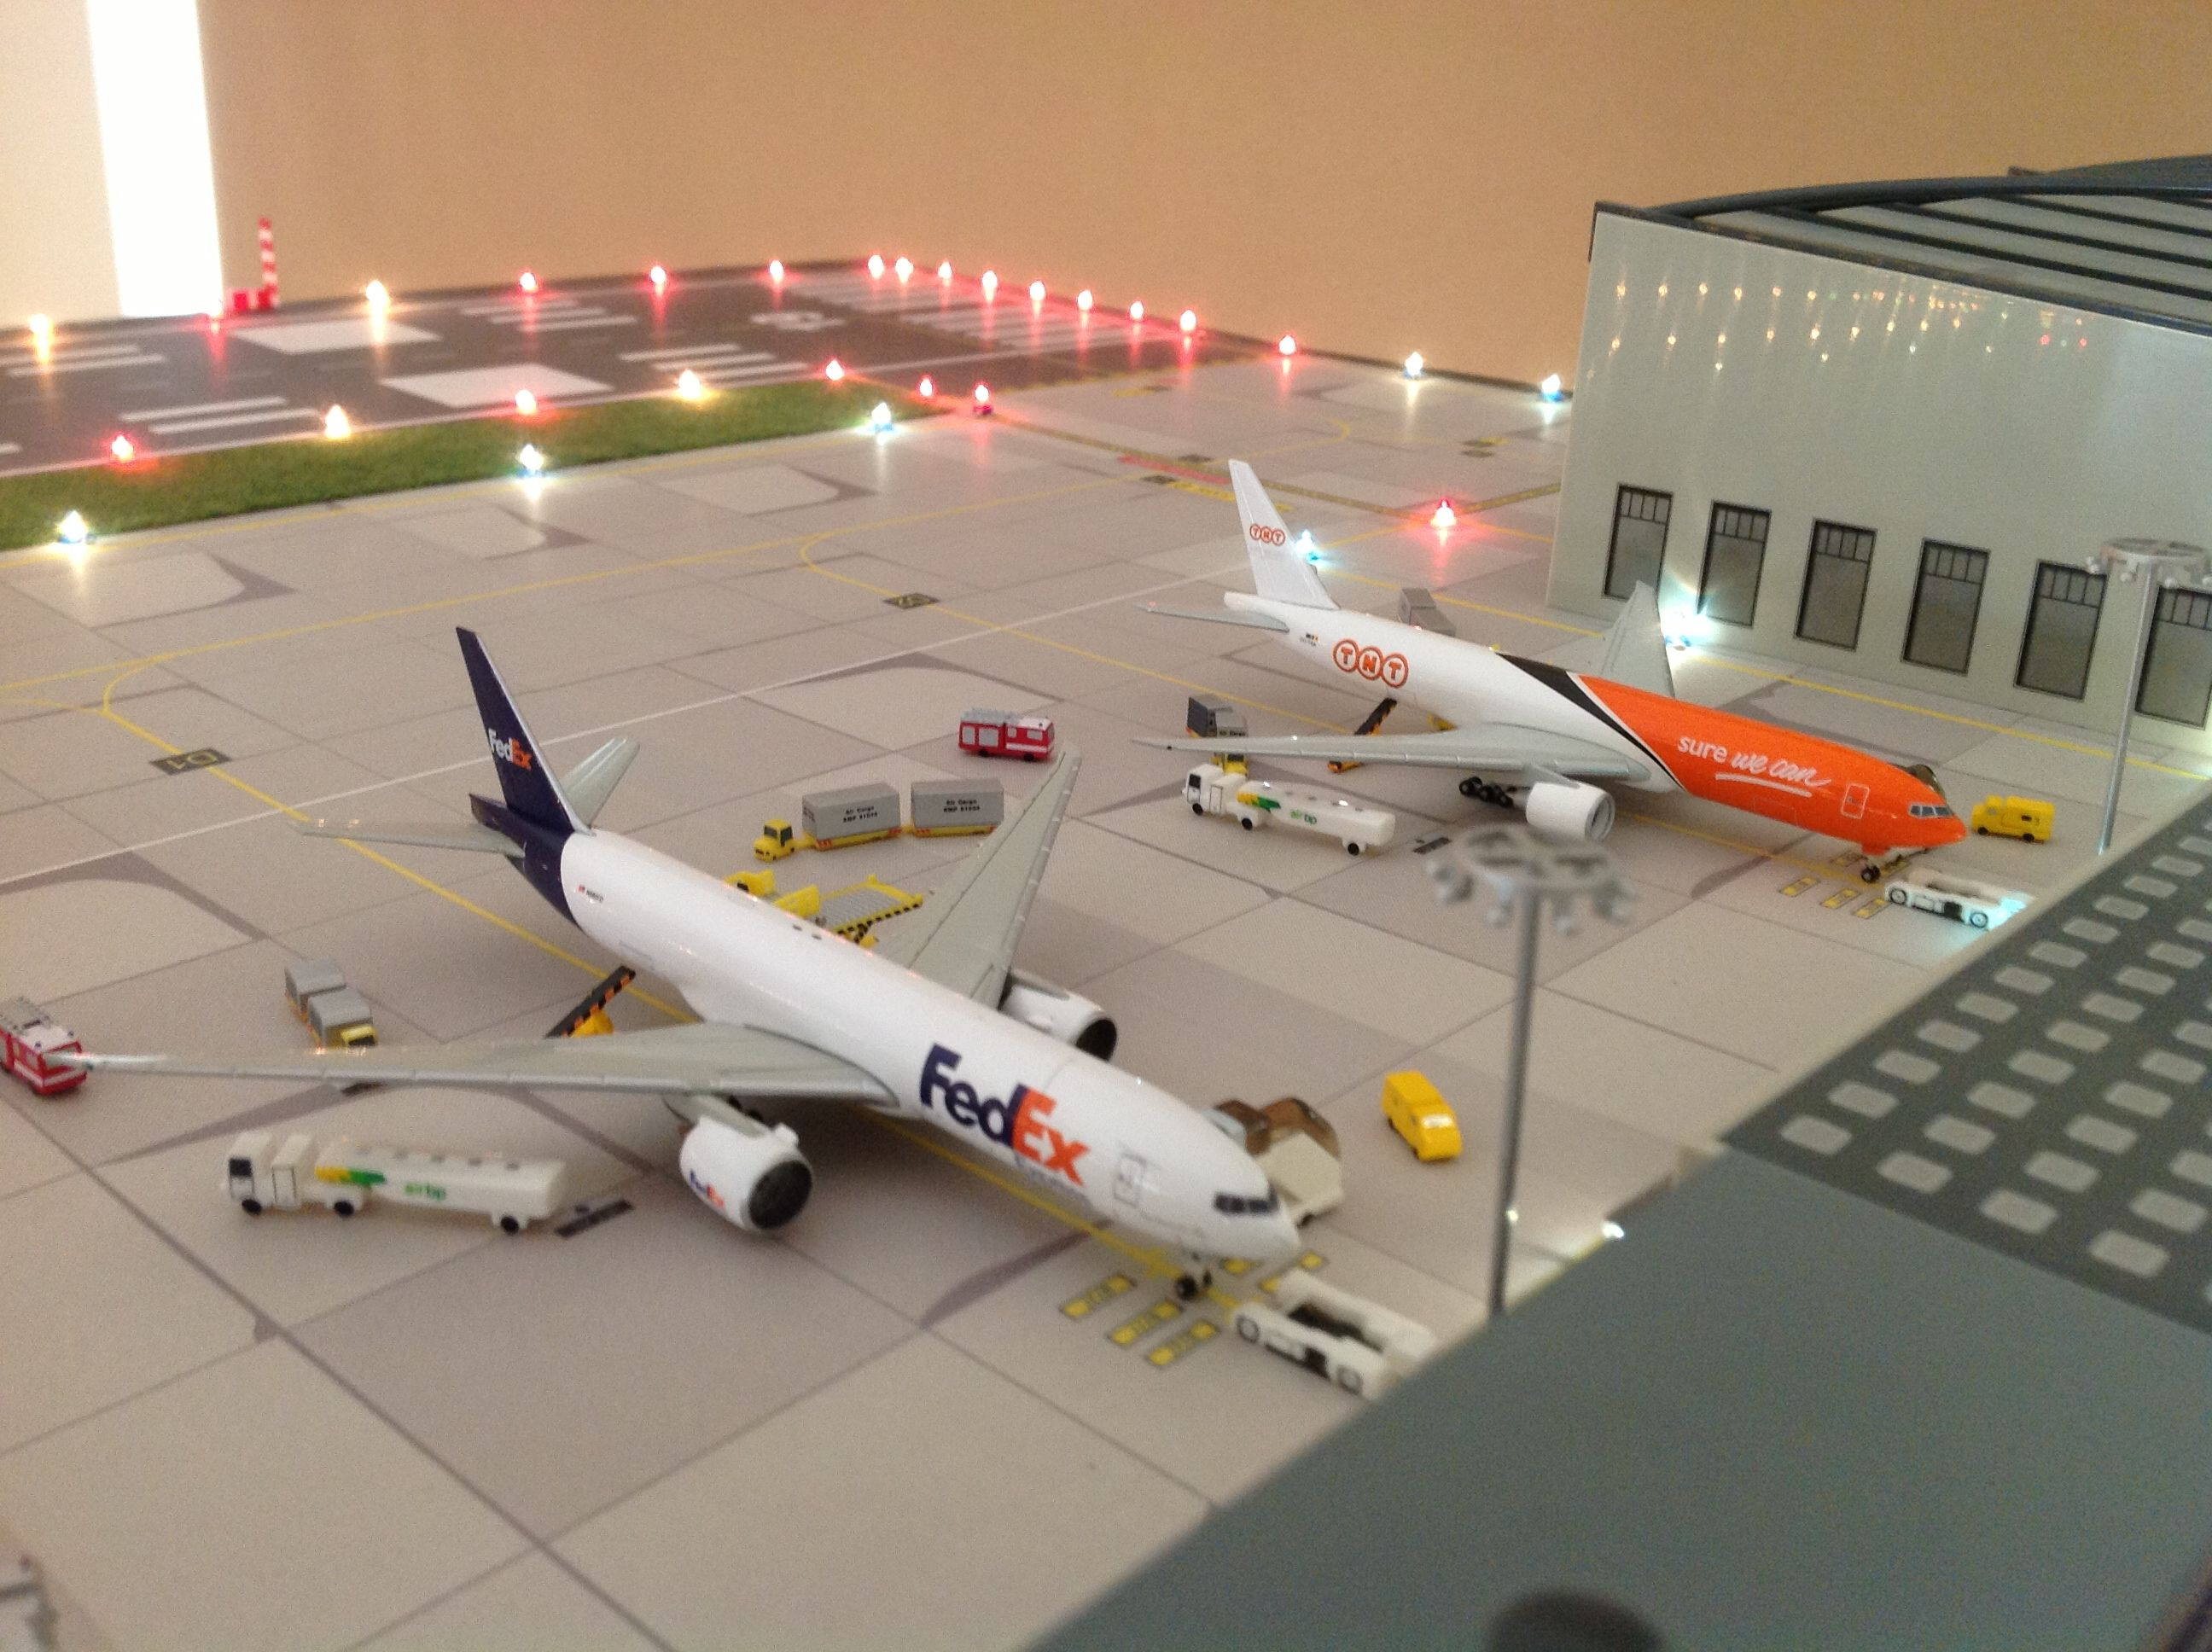 Herpa 1 500 Airport Diarama Lego City Airport Model Airplanes Model Planes